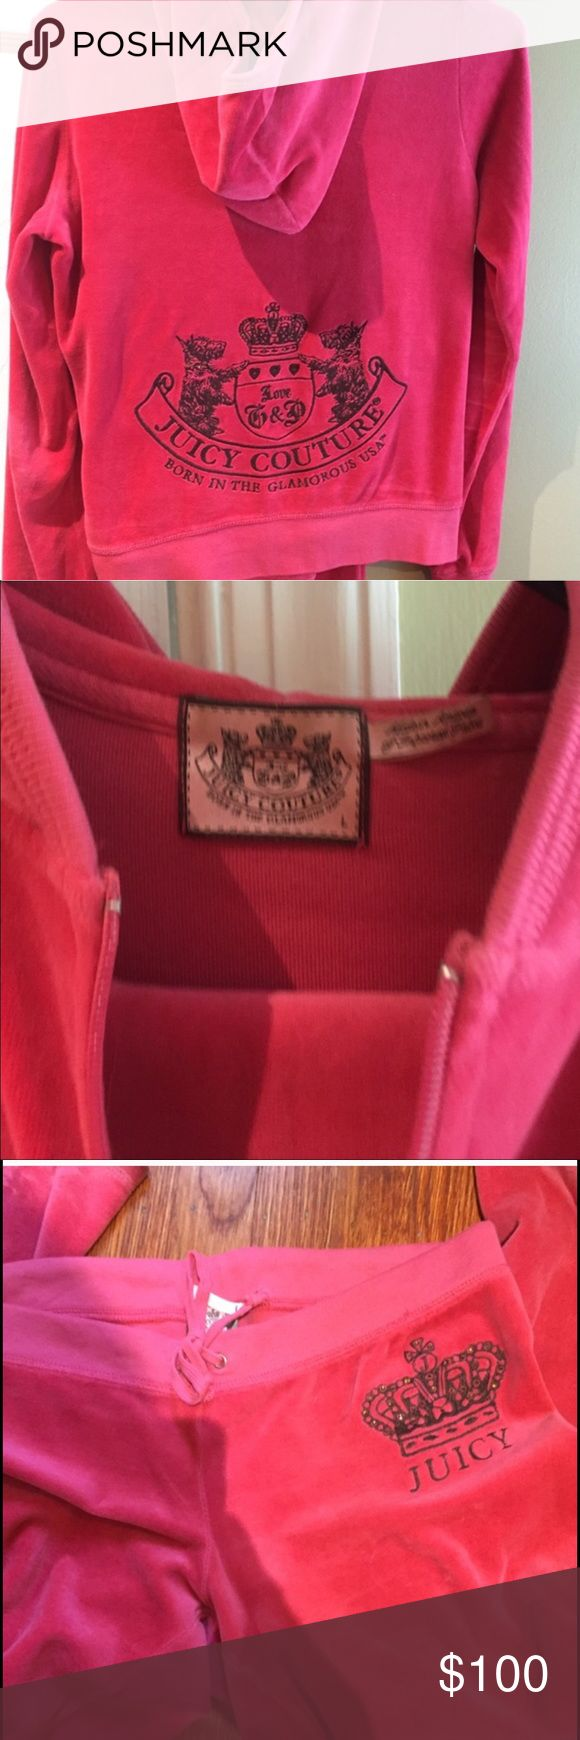 Juicy Couture Velour Tracksuit (HOT PINK) Classic Juicy Couture fit tracksuit in hot pink velour. The actual Juicy logo on the lower back in brown stitching. Standard pants. (No pockets on front or back) Both pieces are size Medium. No rips or stains. No signs of ware.No fading! In EXCELLENT condition!!!! Will trade for another juicy tracksuit in size Large! I am looking for a Barbie pink. Juicy Couture Other